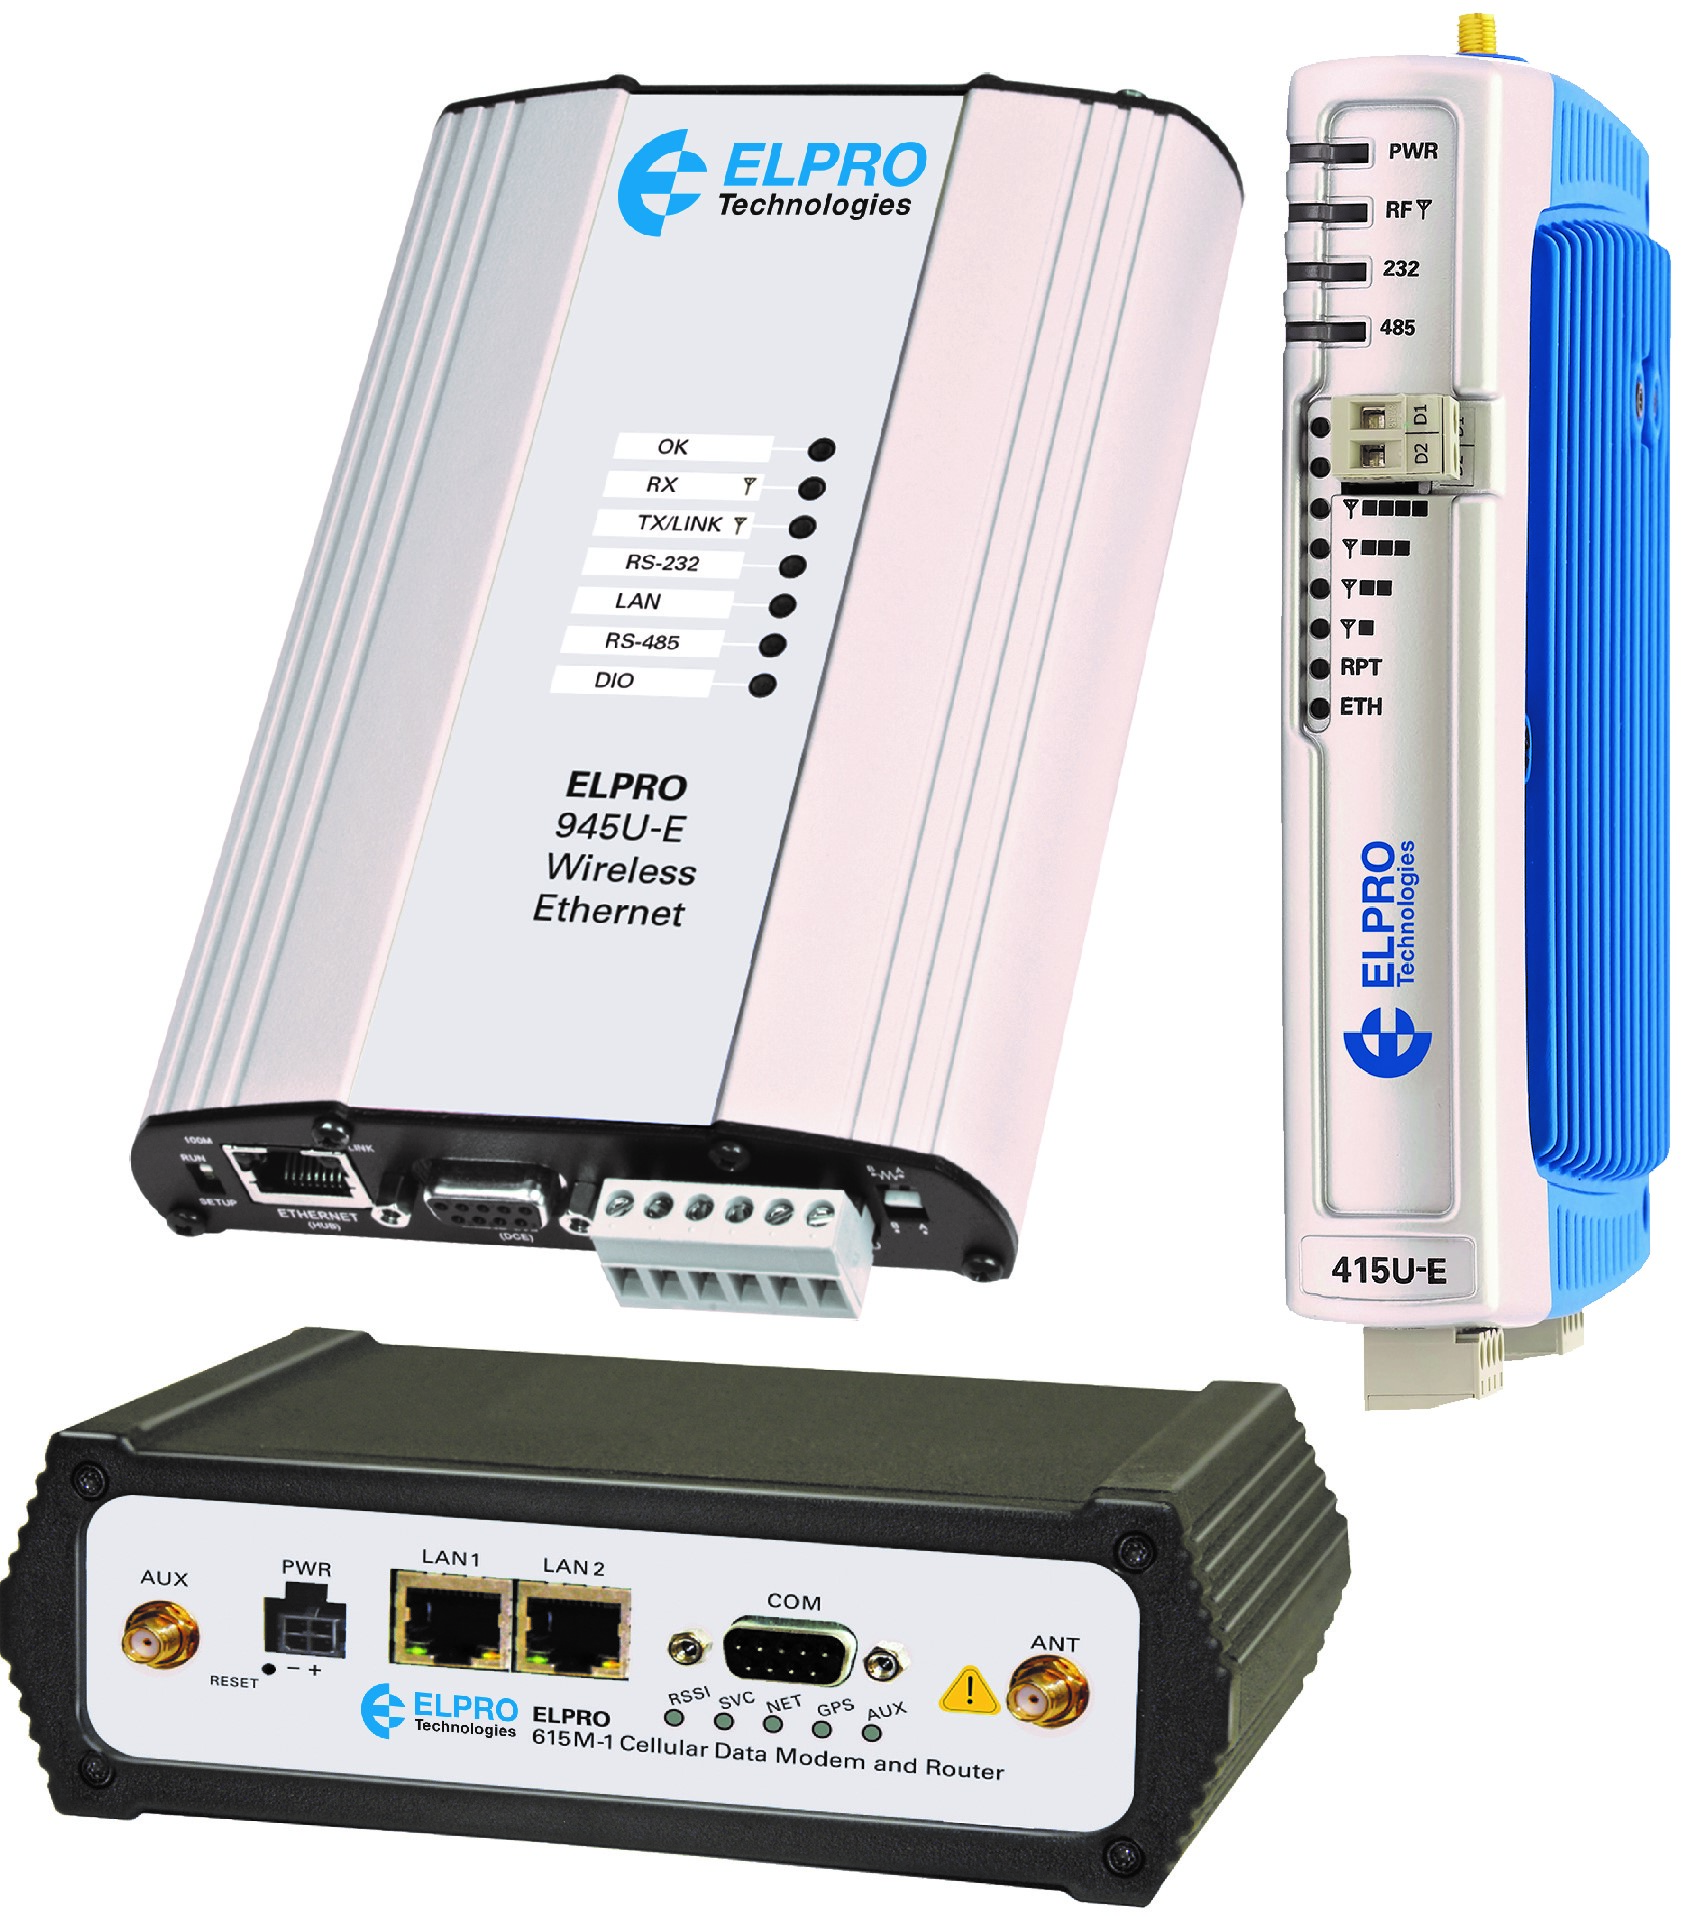 Elpro's Industrial wireless modems